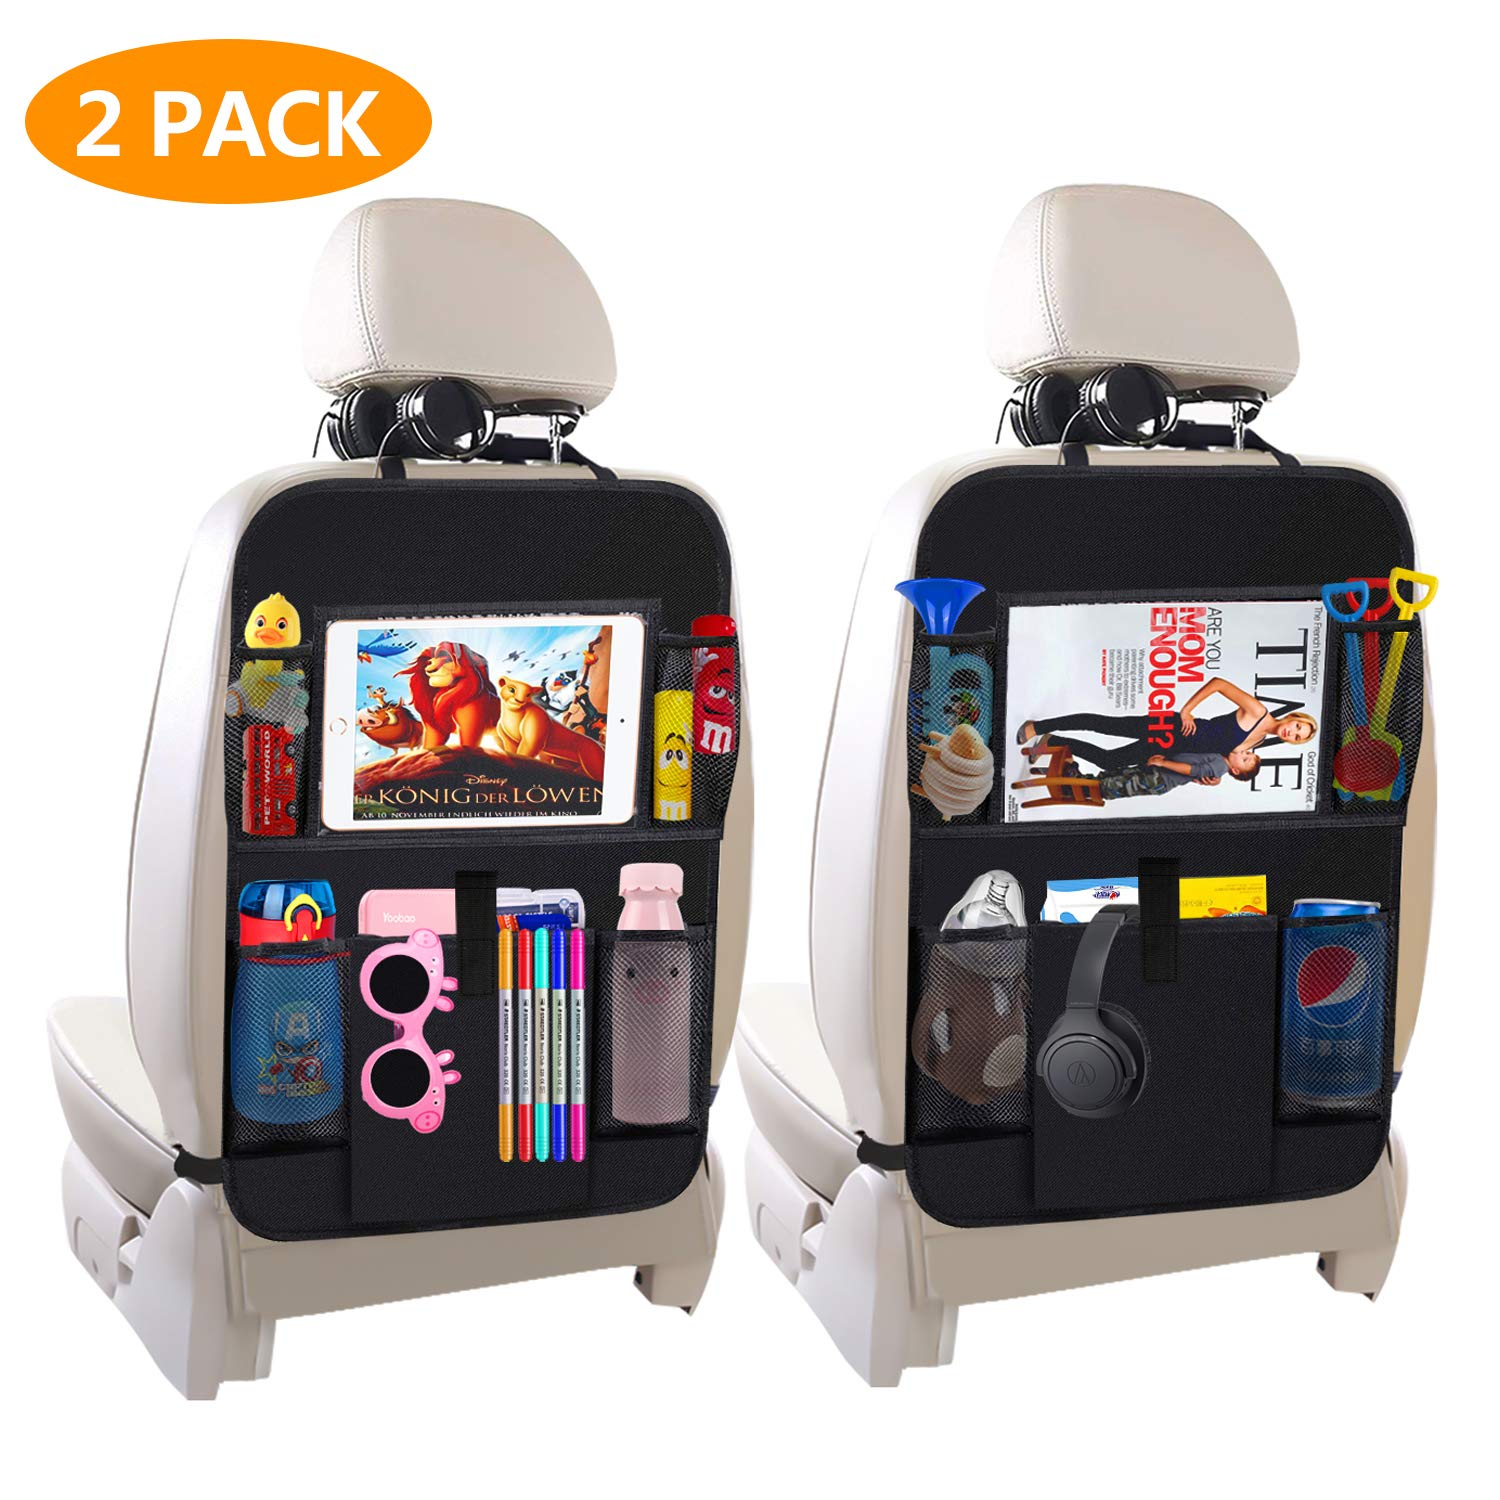 Car Backseat Organizer,Kick Mats Car Seat Back Protectors with 5 Storage Pockets+10'' Touch Screen Tablet Holder for Baby Toys Book Bottle Drinks Kids Travel Accessories(2 Pack) by Petrry-link